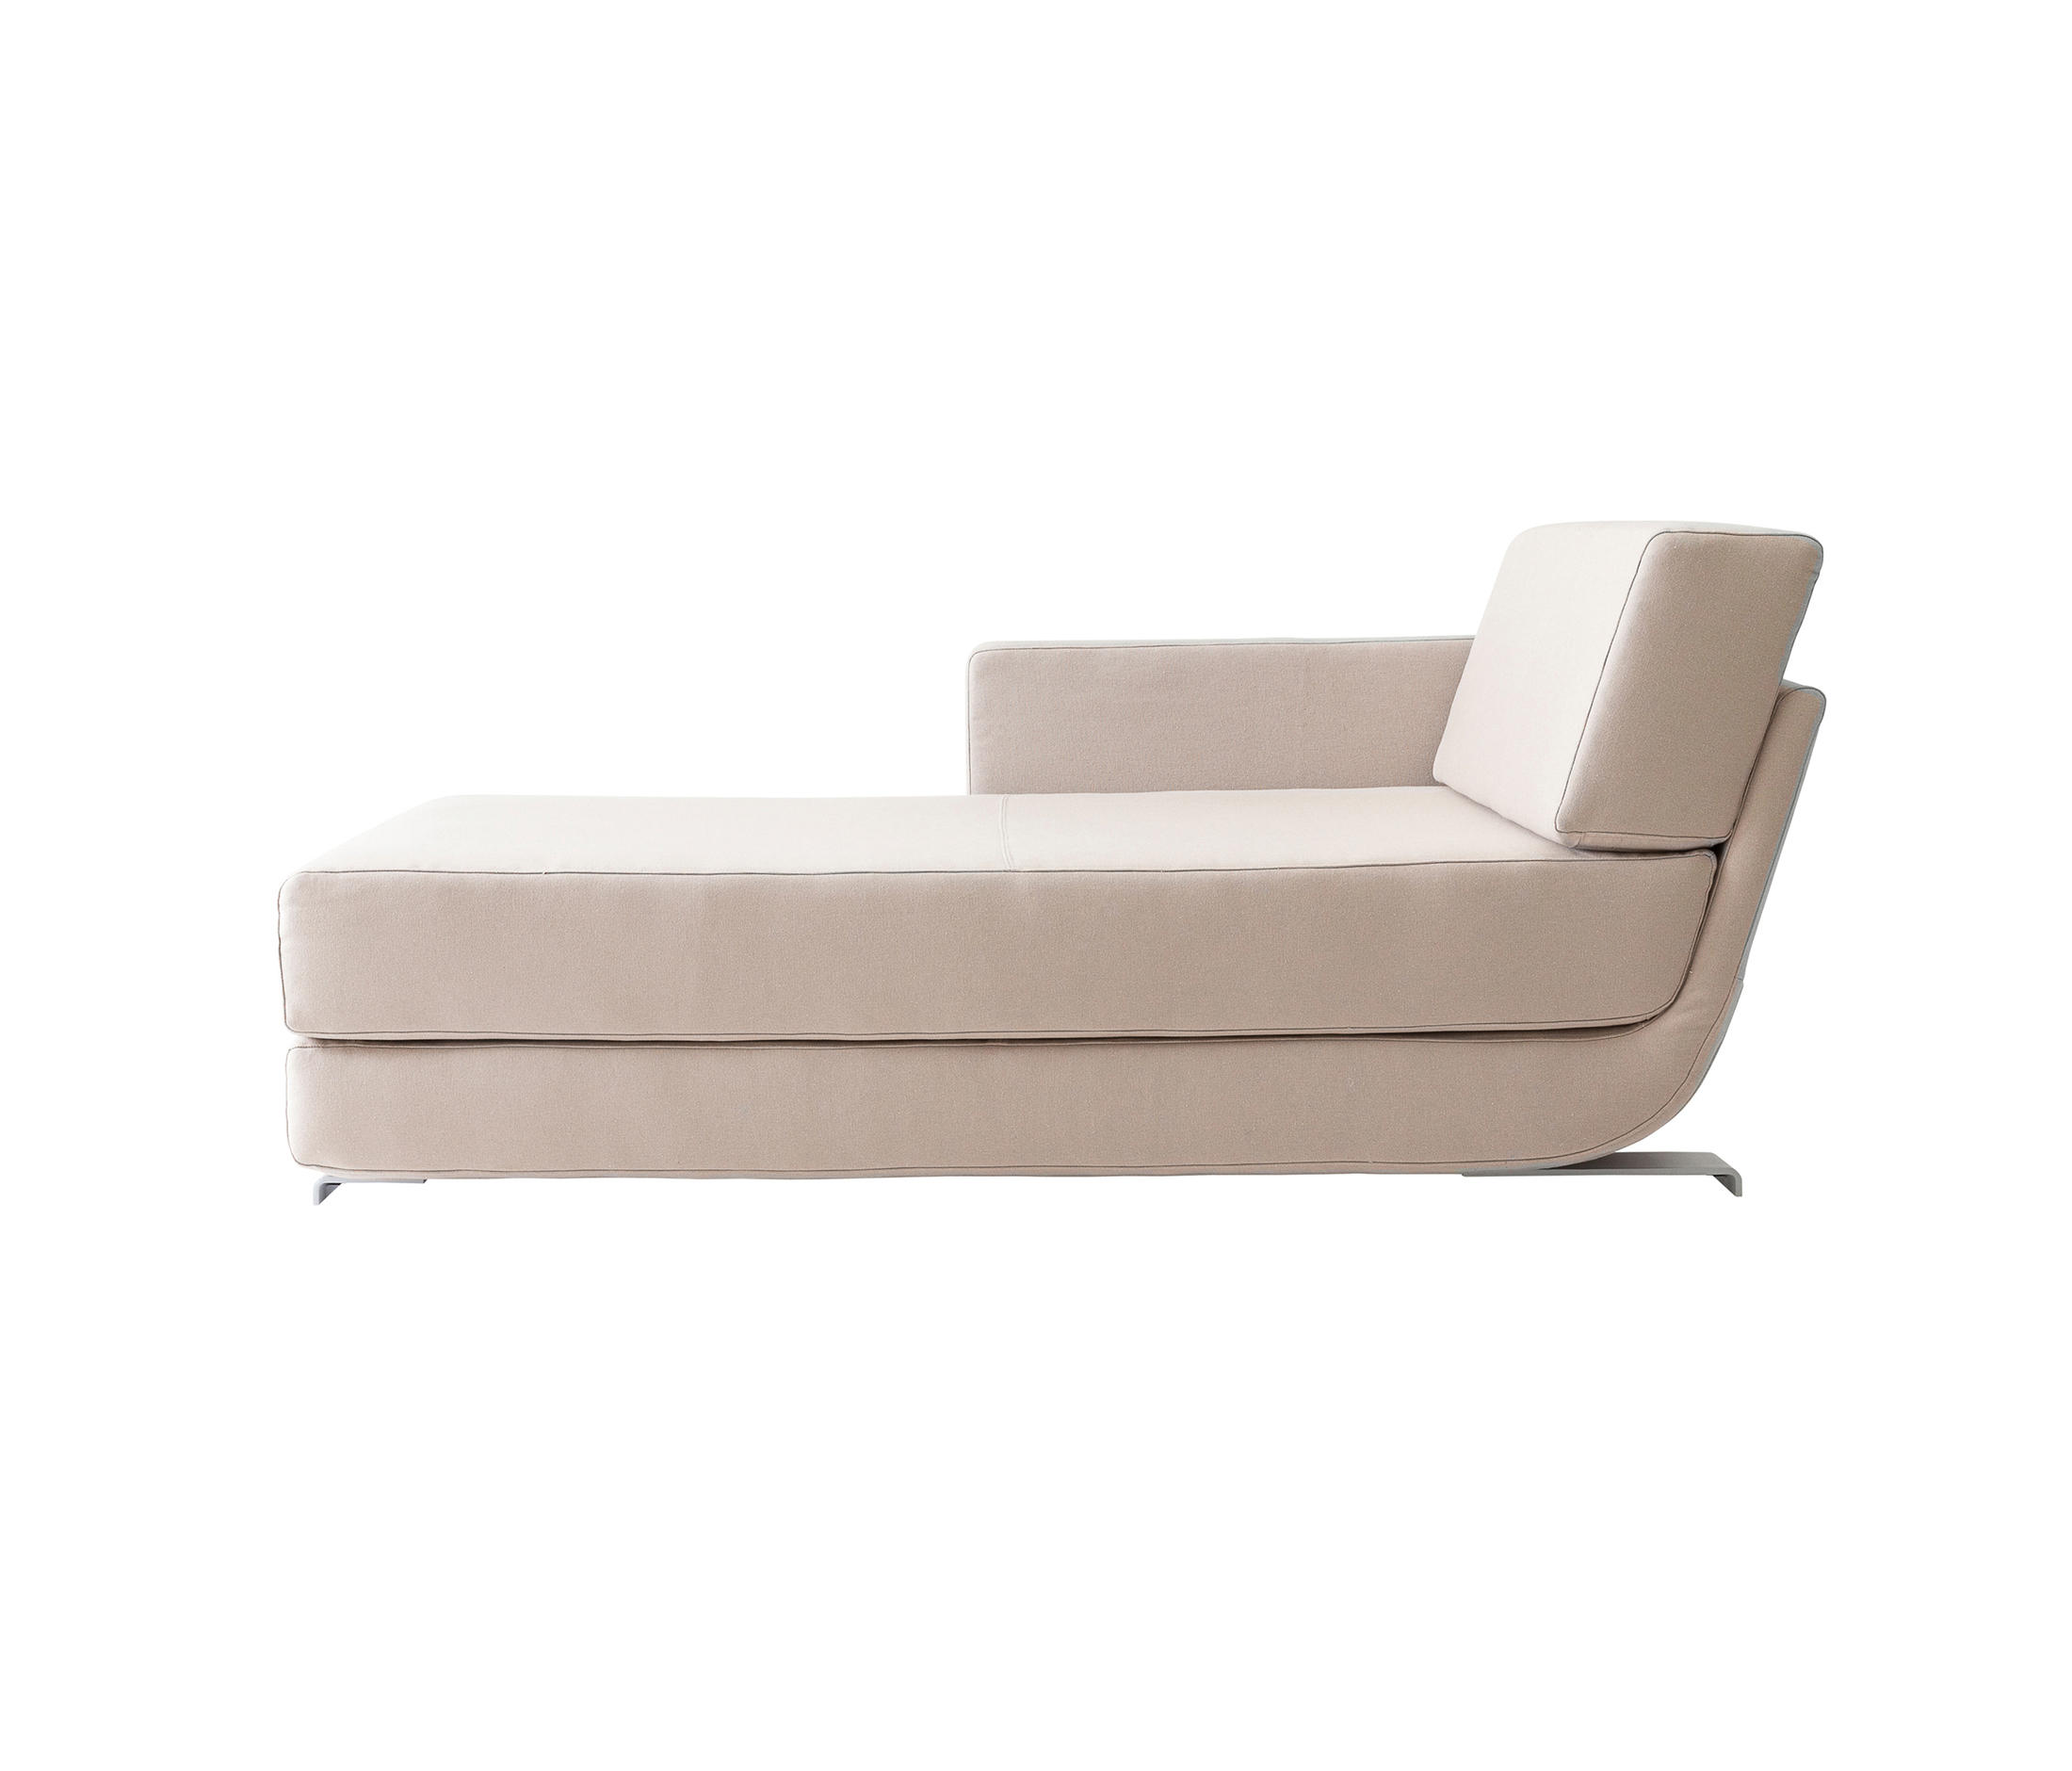 Lounge chaise long sofa beds from softline a s architonic for Chaise long sofa